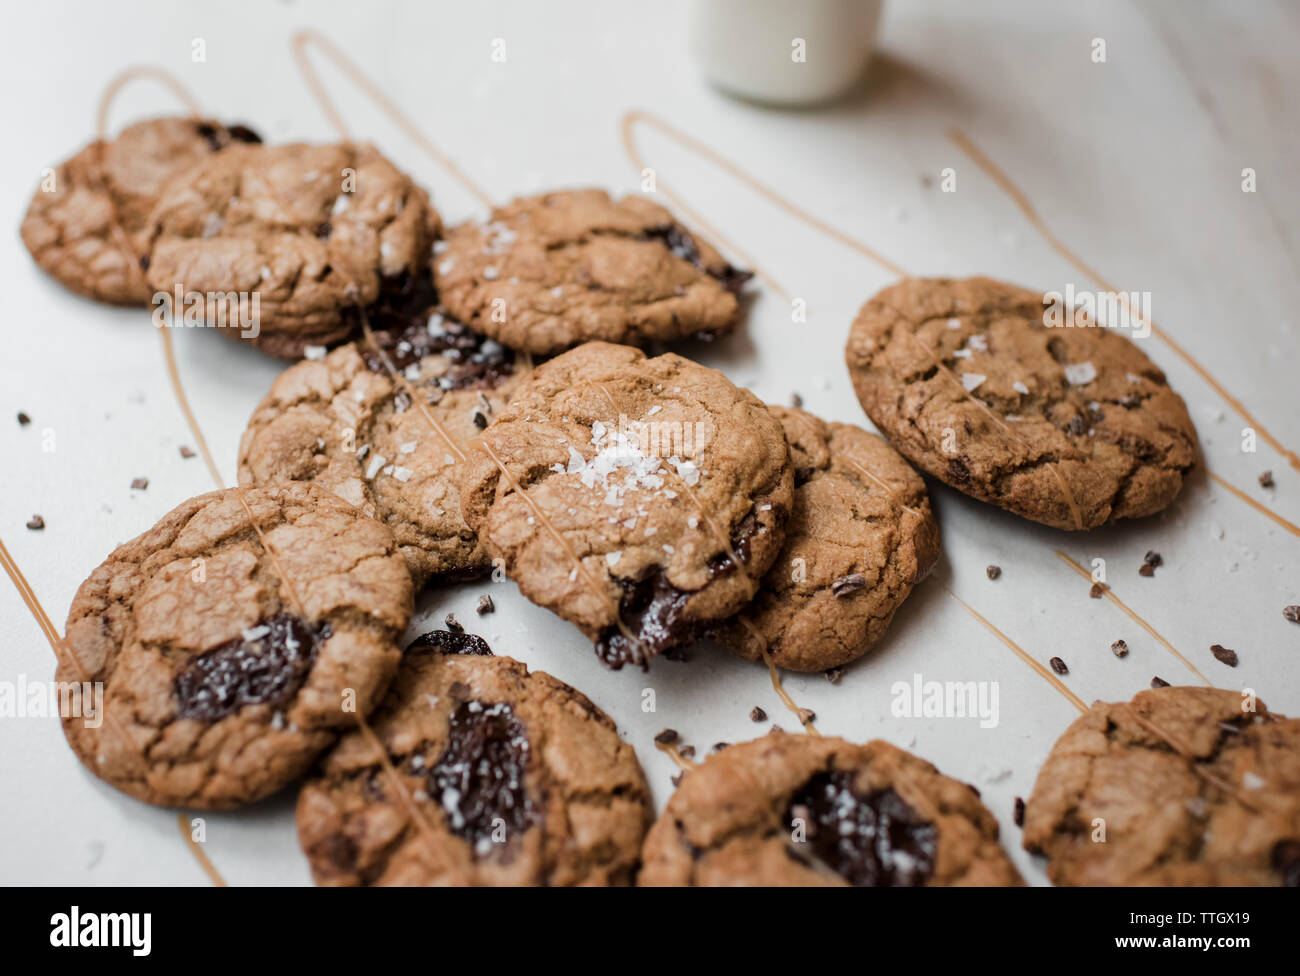 homemade chocolate cookies covered in caramel with milk - Stock Image